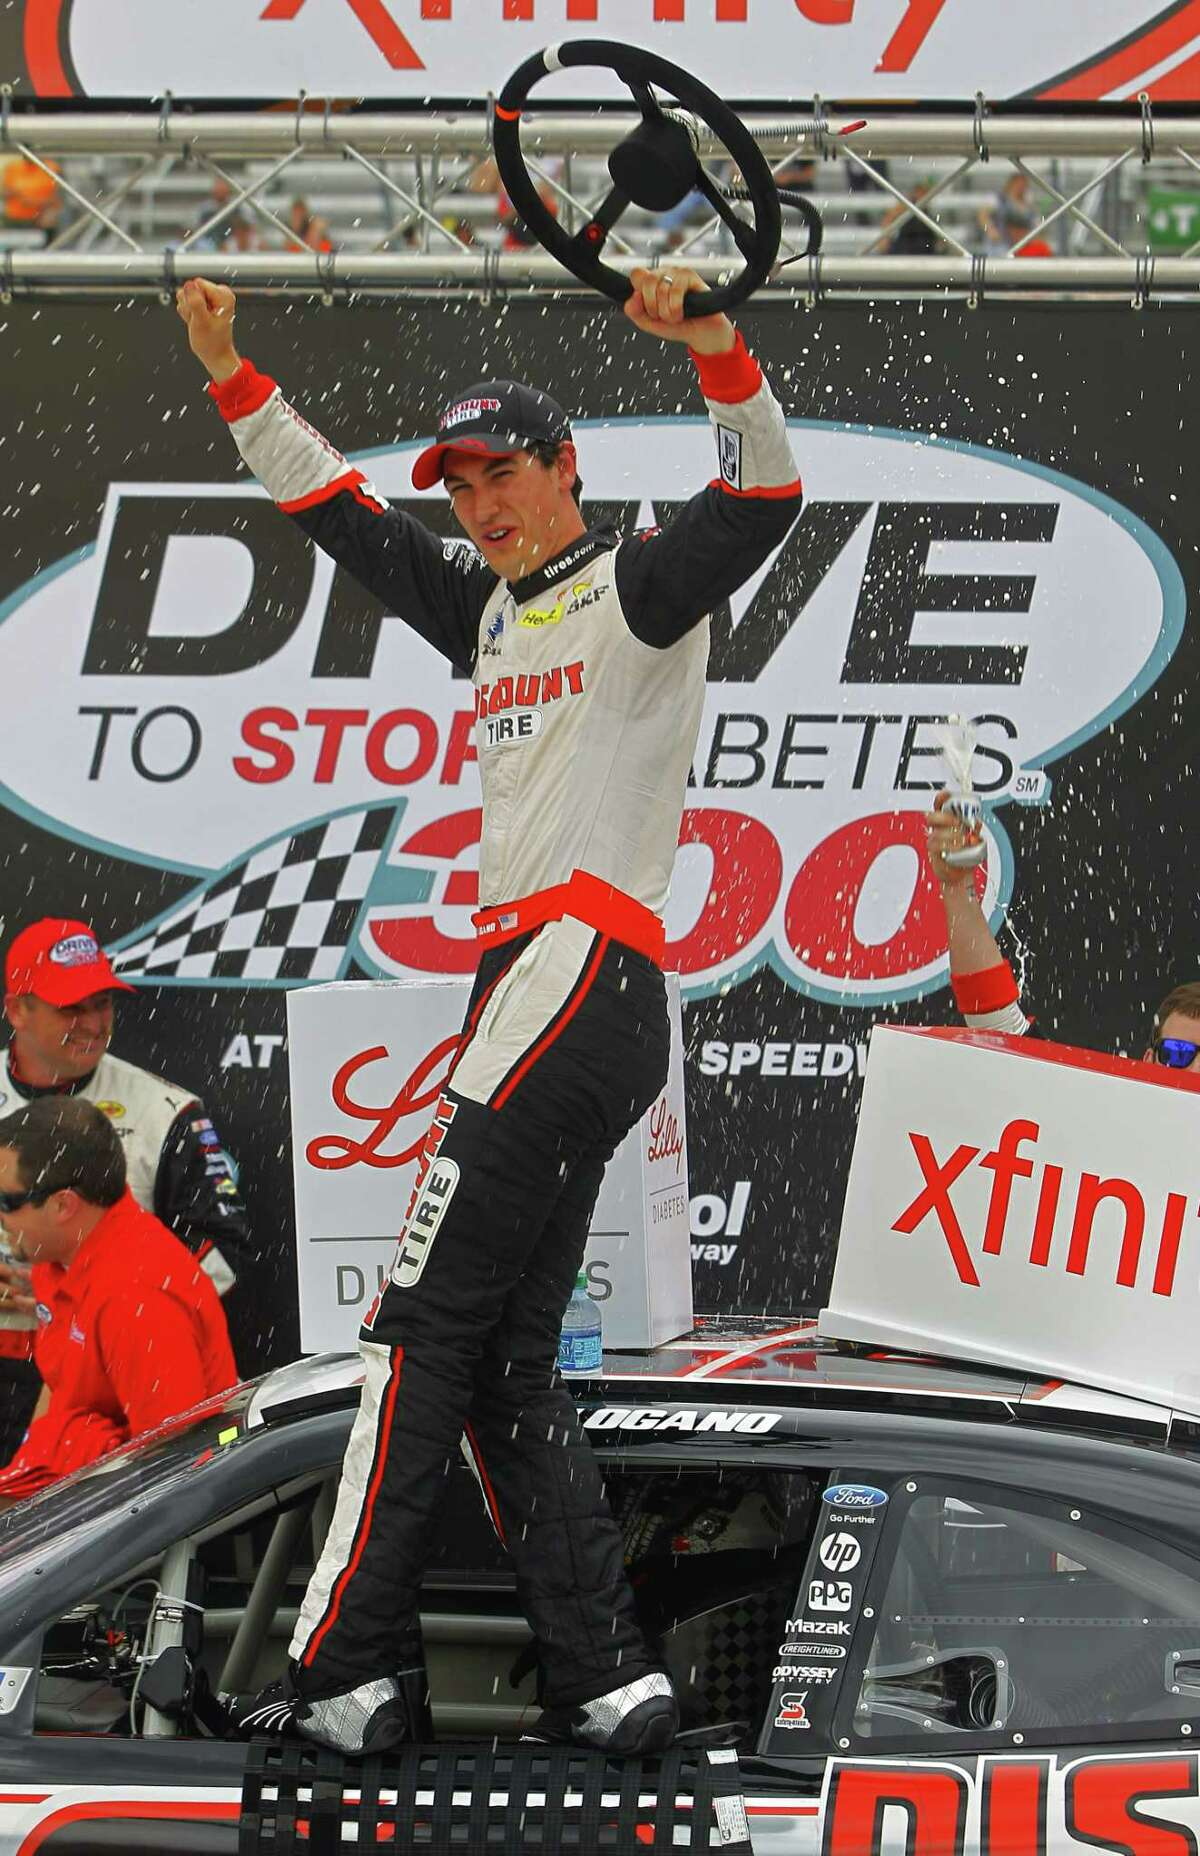 Middletown's Joey Logano celebrates in Victory Lane after winning the NASCAR Xfinity Series race on Saturday at Bristol Motor Speedway in Bristol, Tenn.